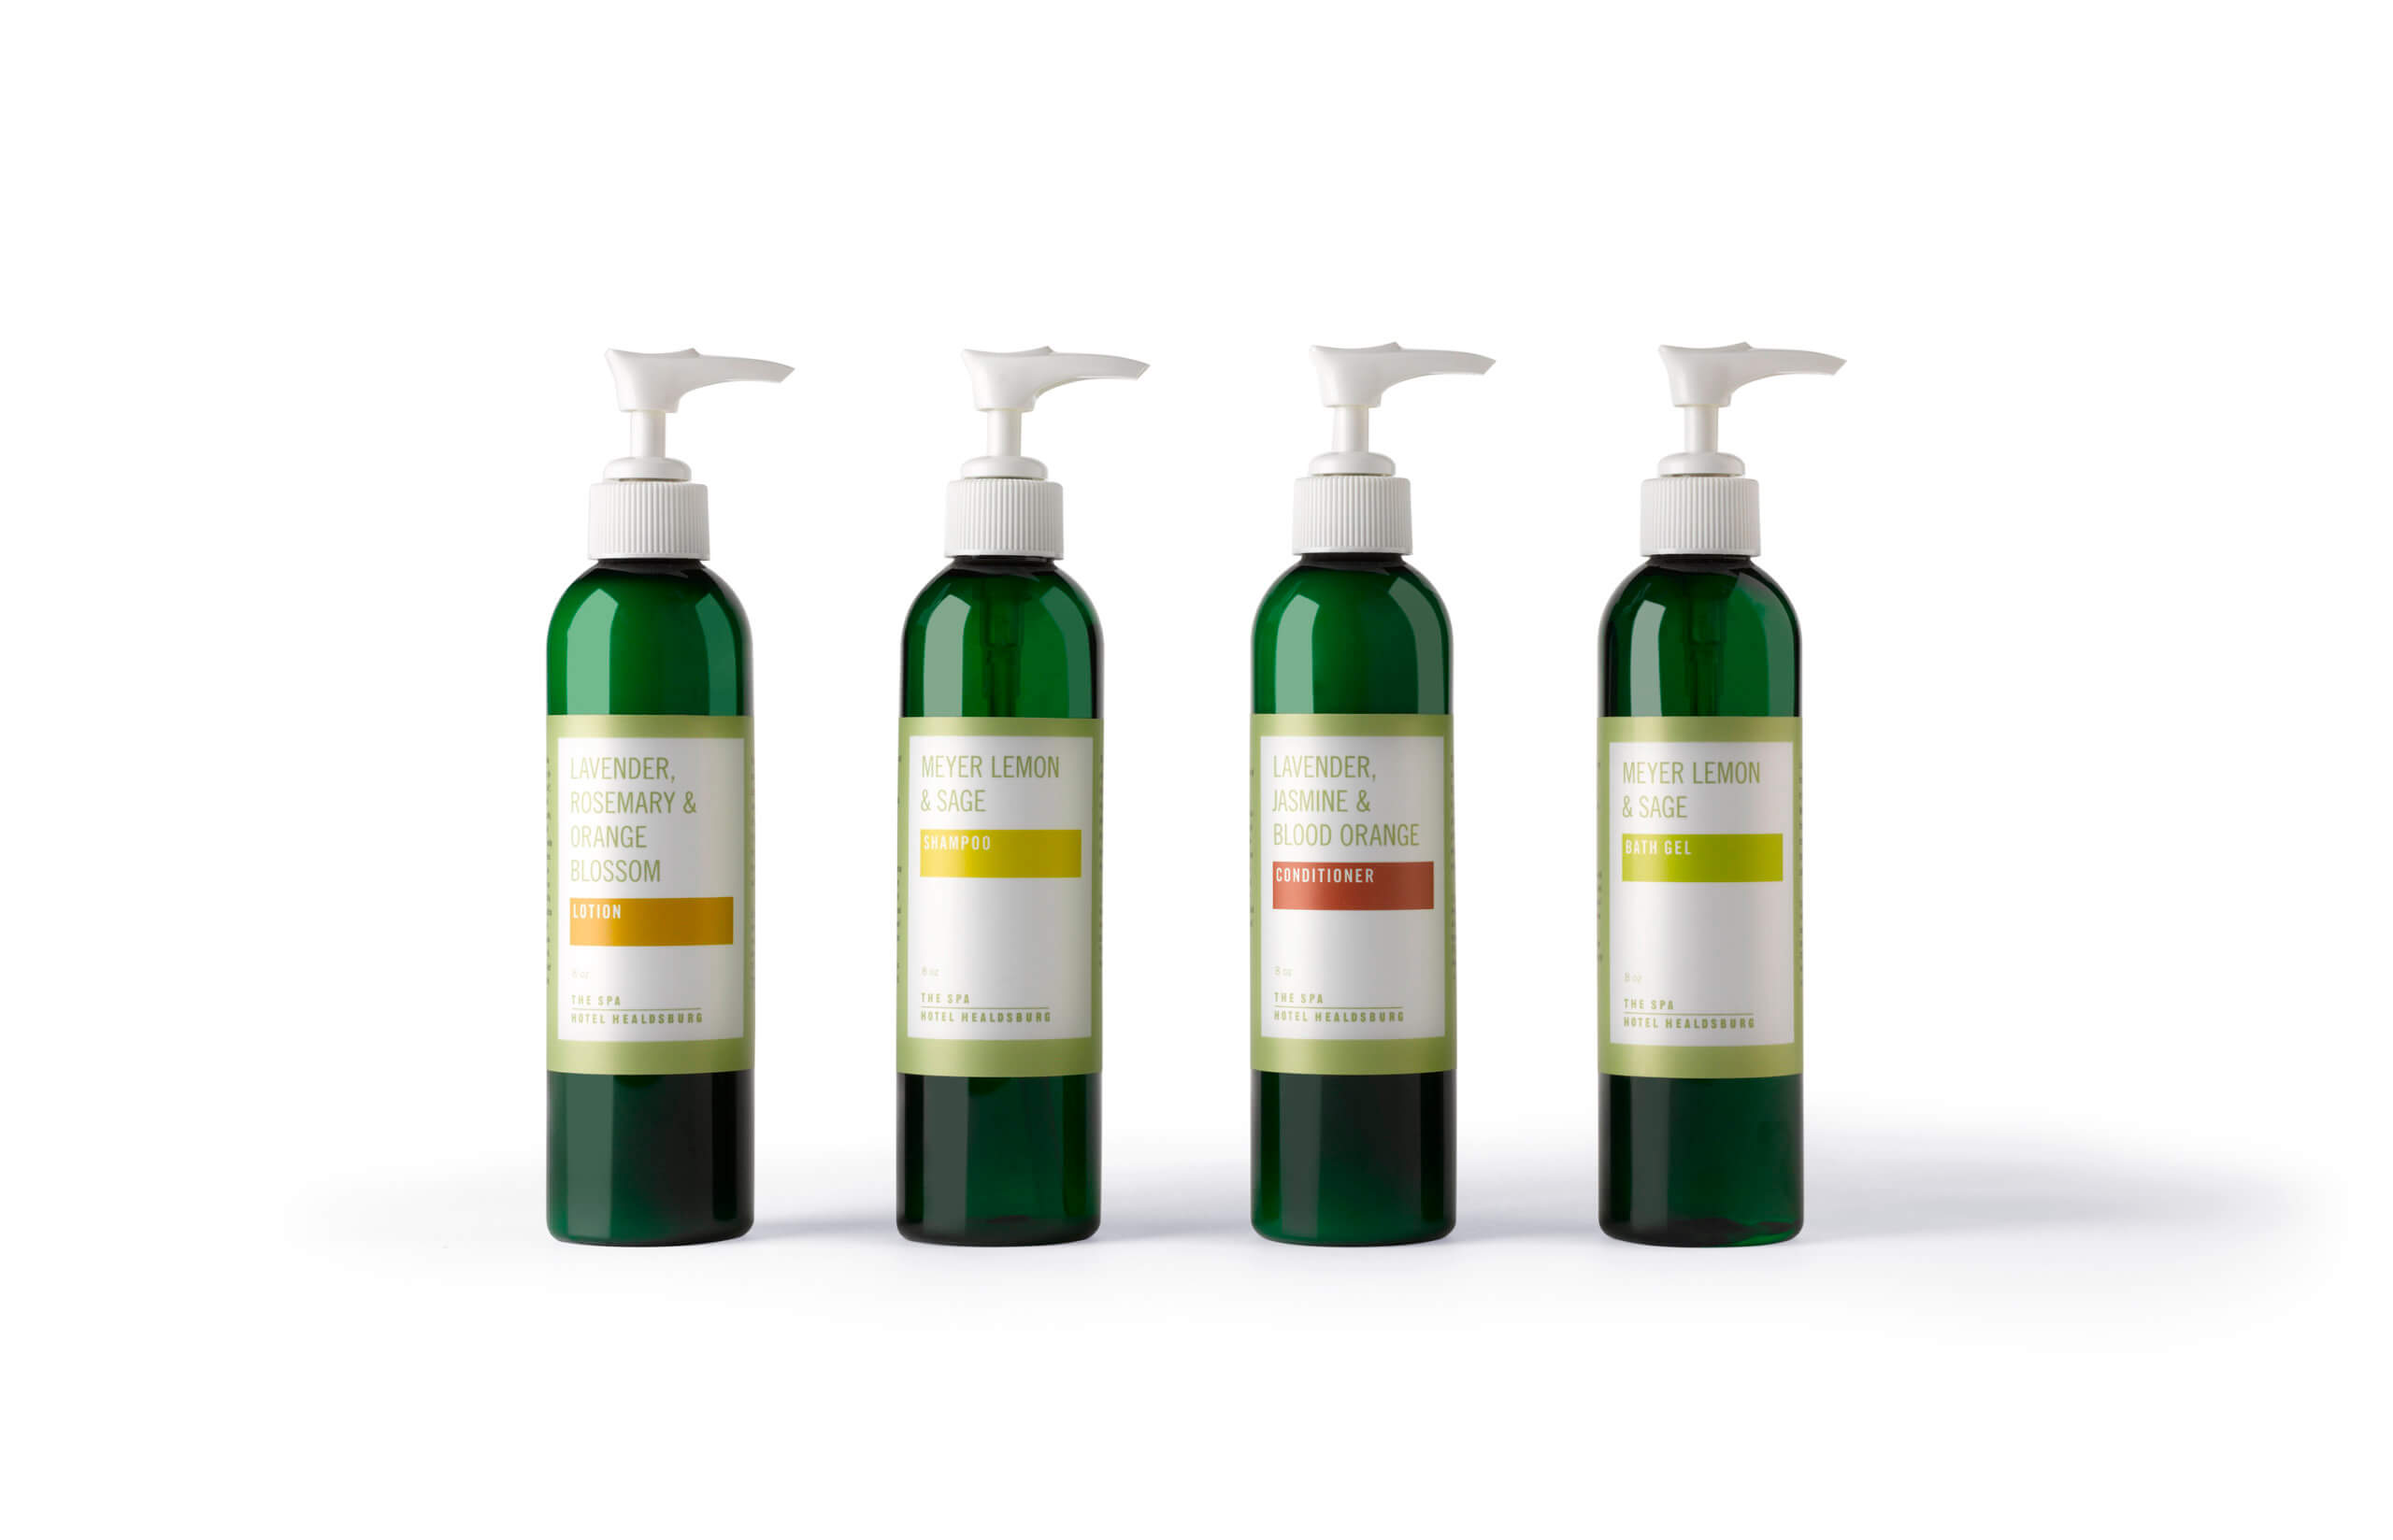 4 green bottles with white pumps and color block labels